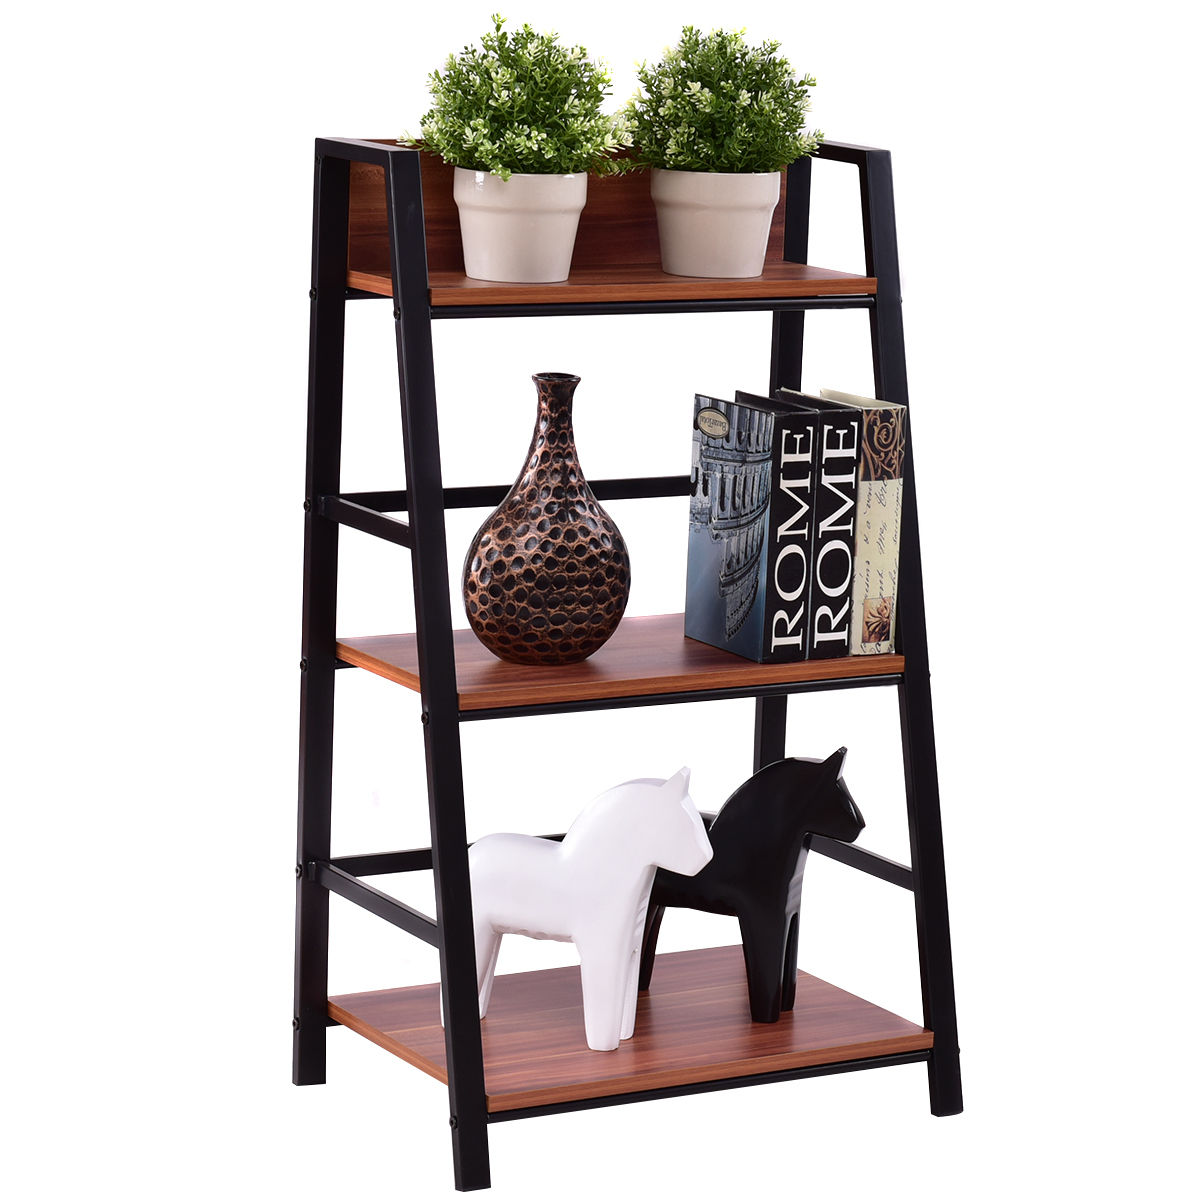 Living Room With Bookshelf: Giantex 3 Tier Ladder Display Shlf Living Room Storage